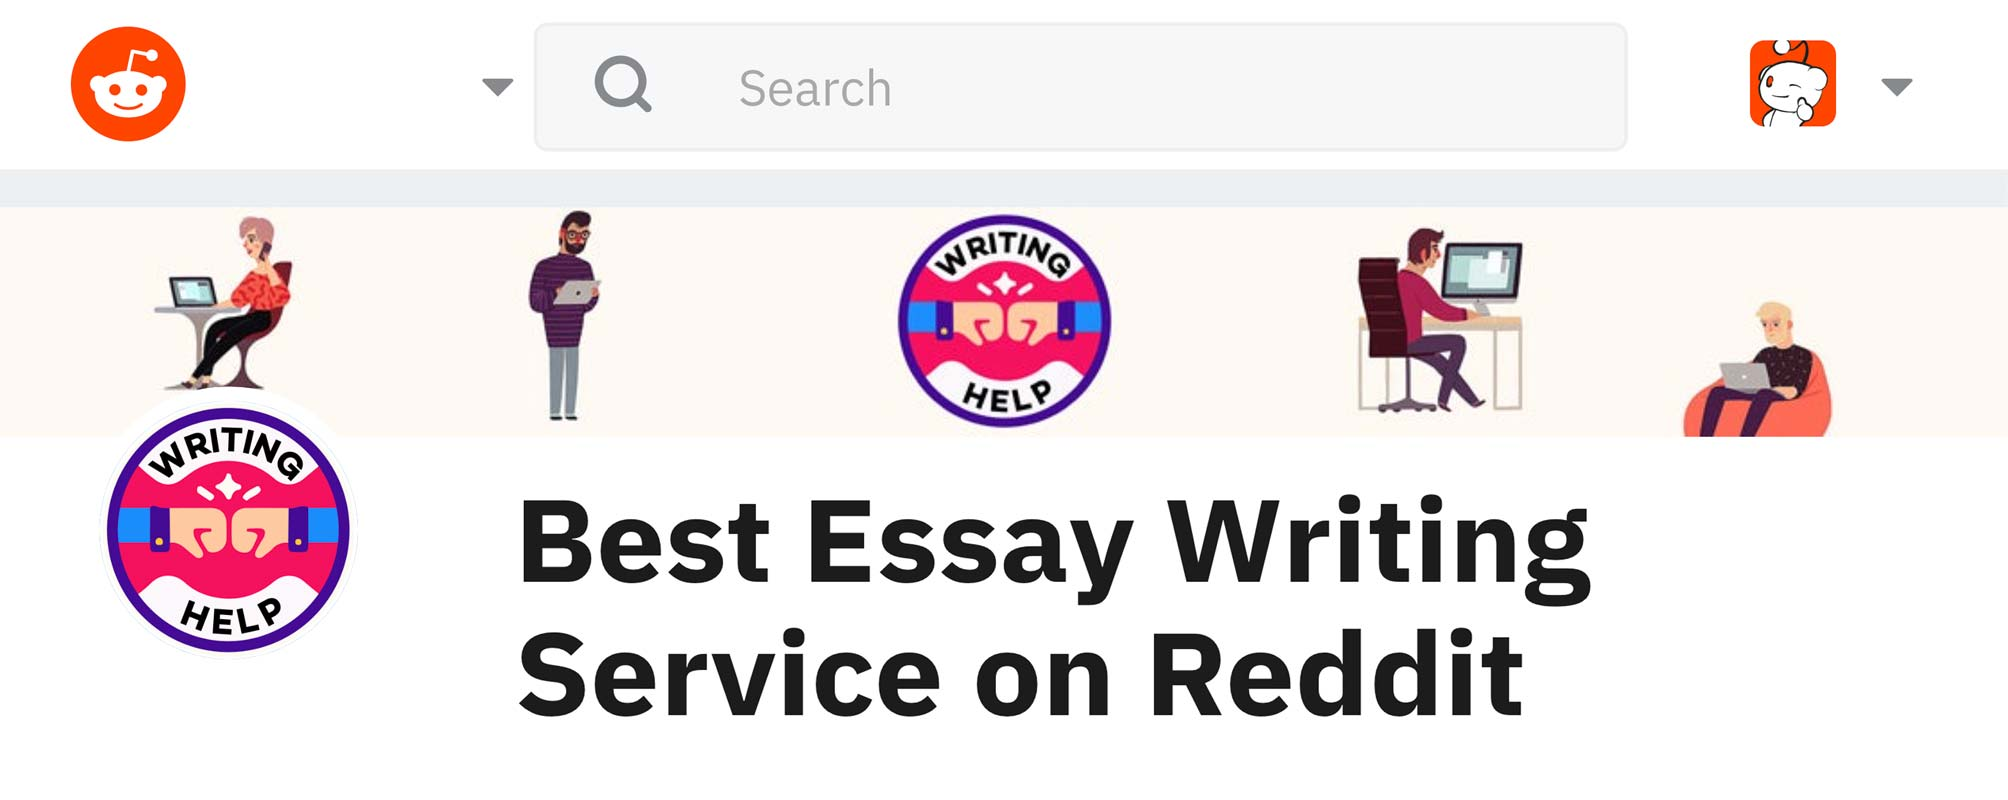 Essay writing service reddit